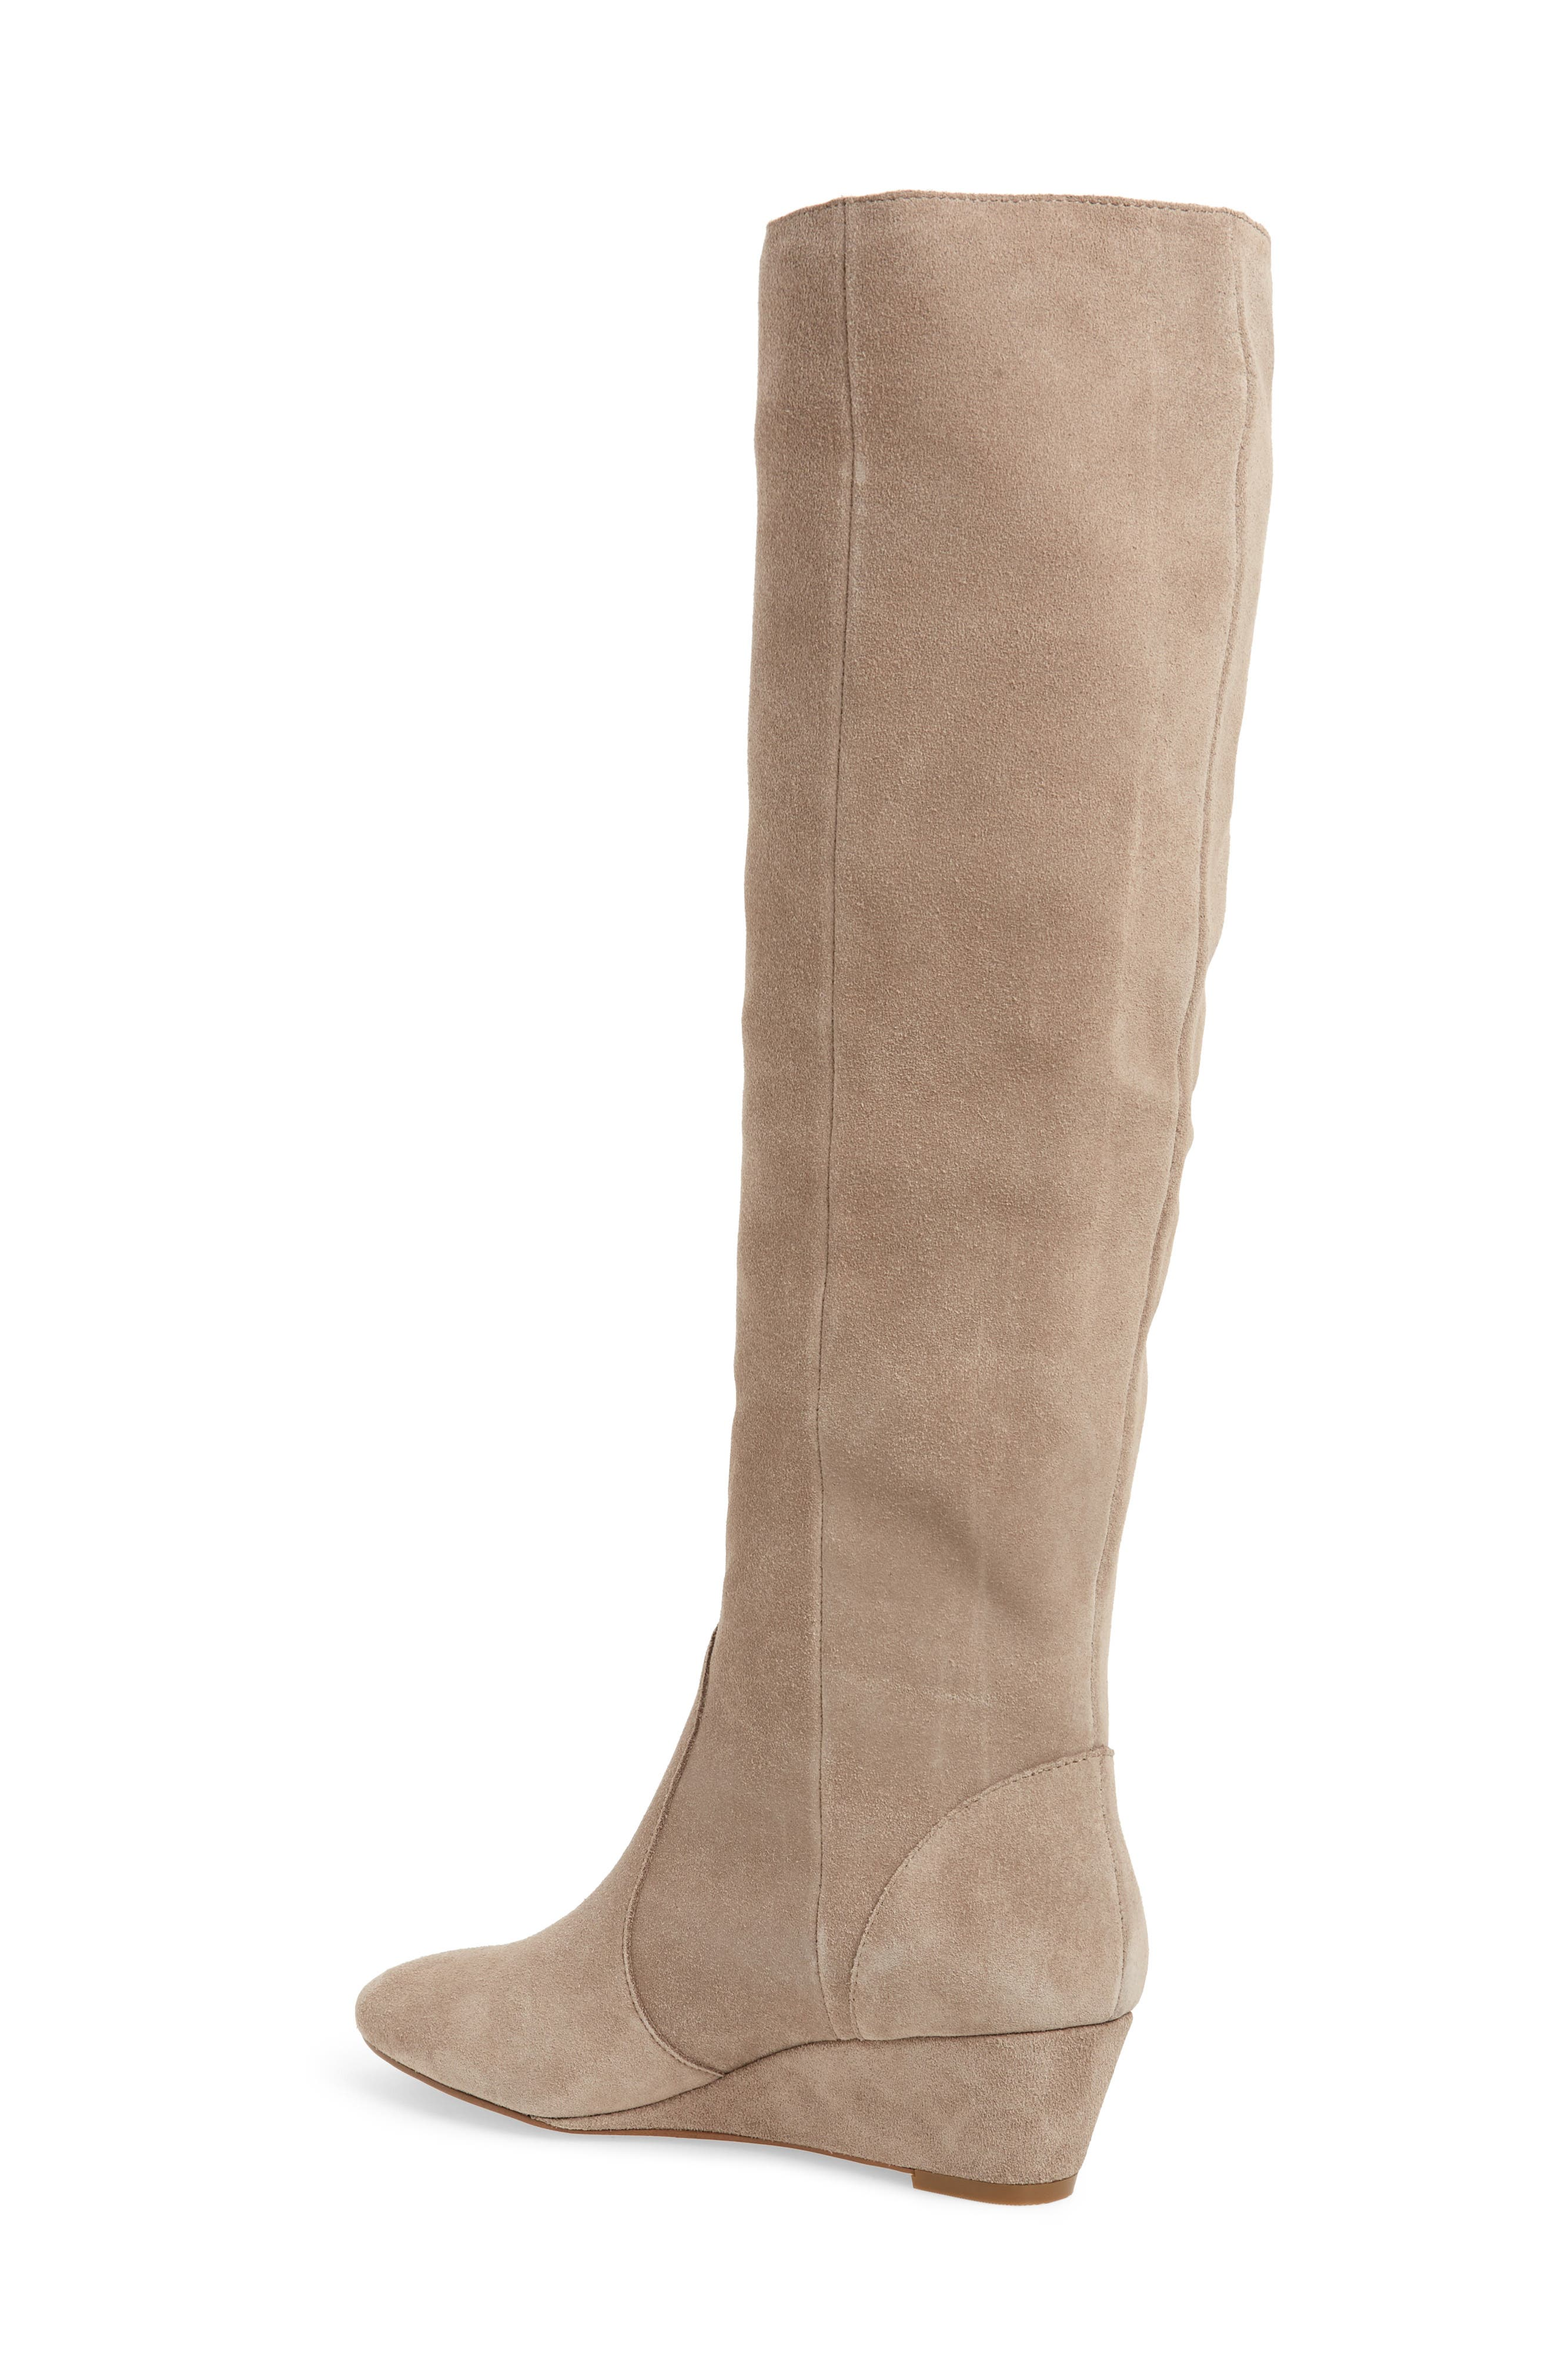 Aileena Over the Knee Boot,                             Alternate thumbnail 2, color,                             263